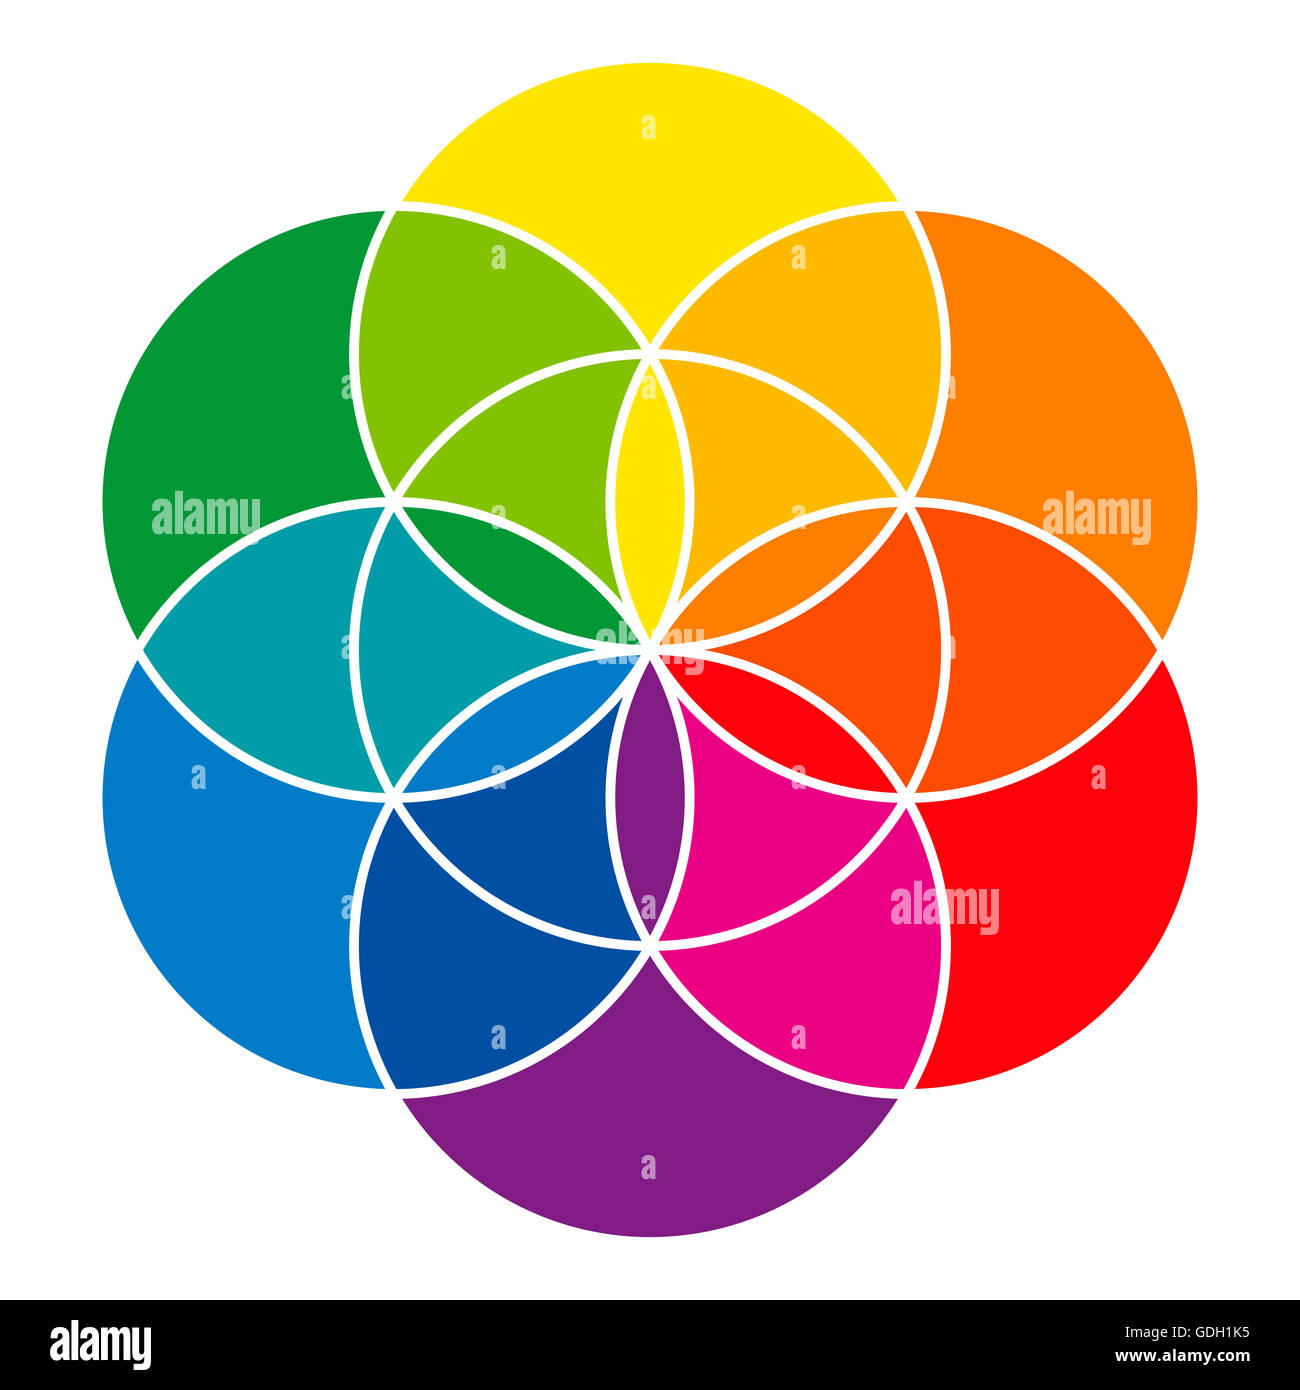 Rainbow Colored Seed Of Life And Color Wheel Showing Complementary